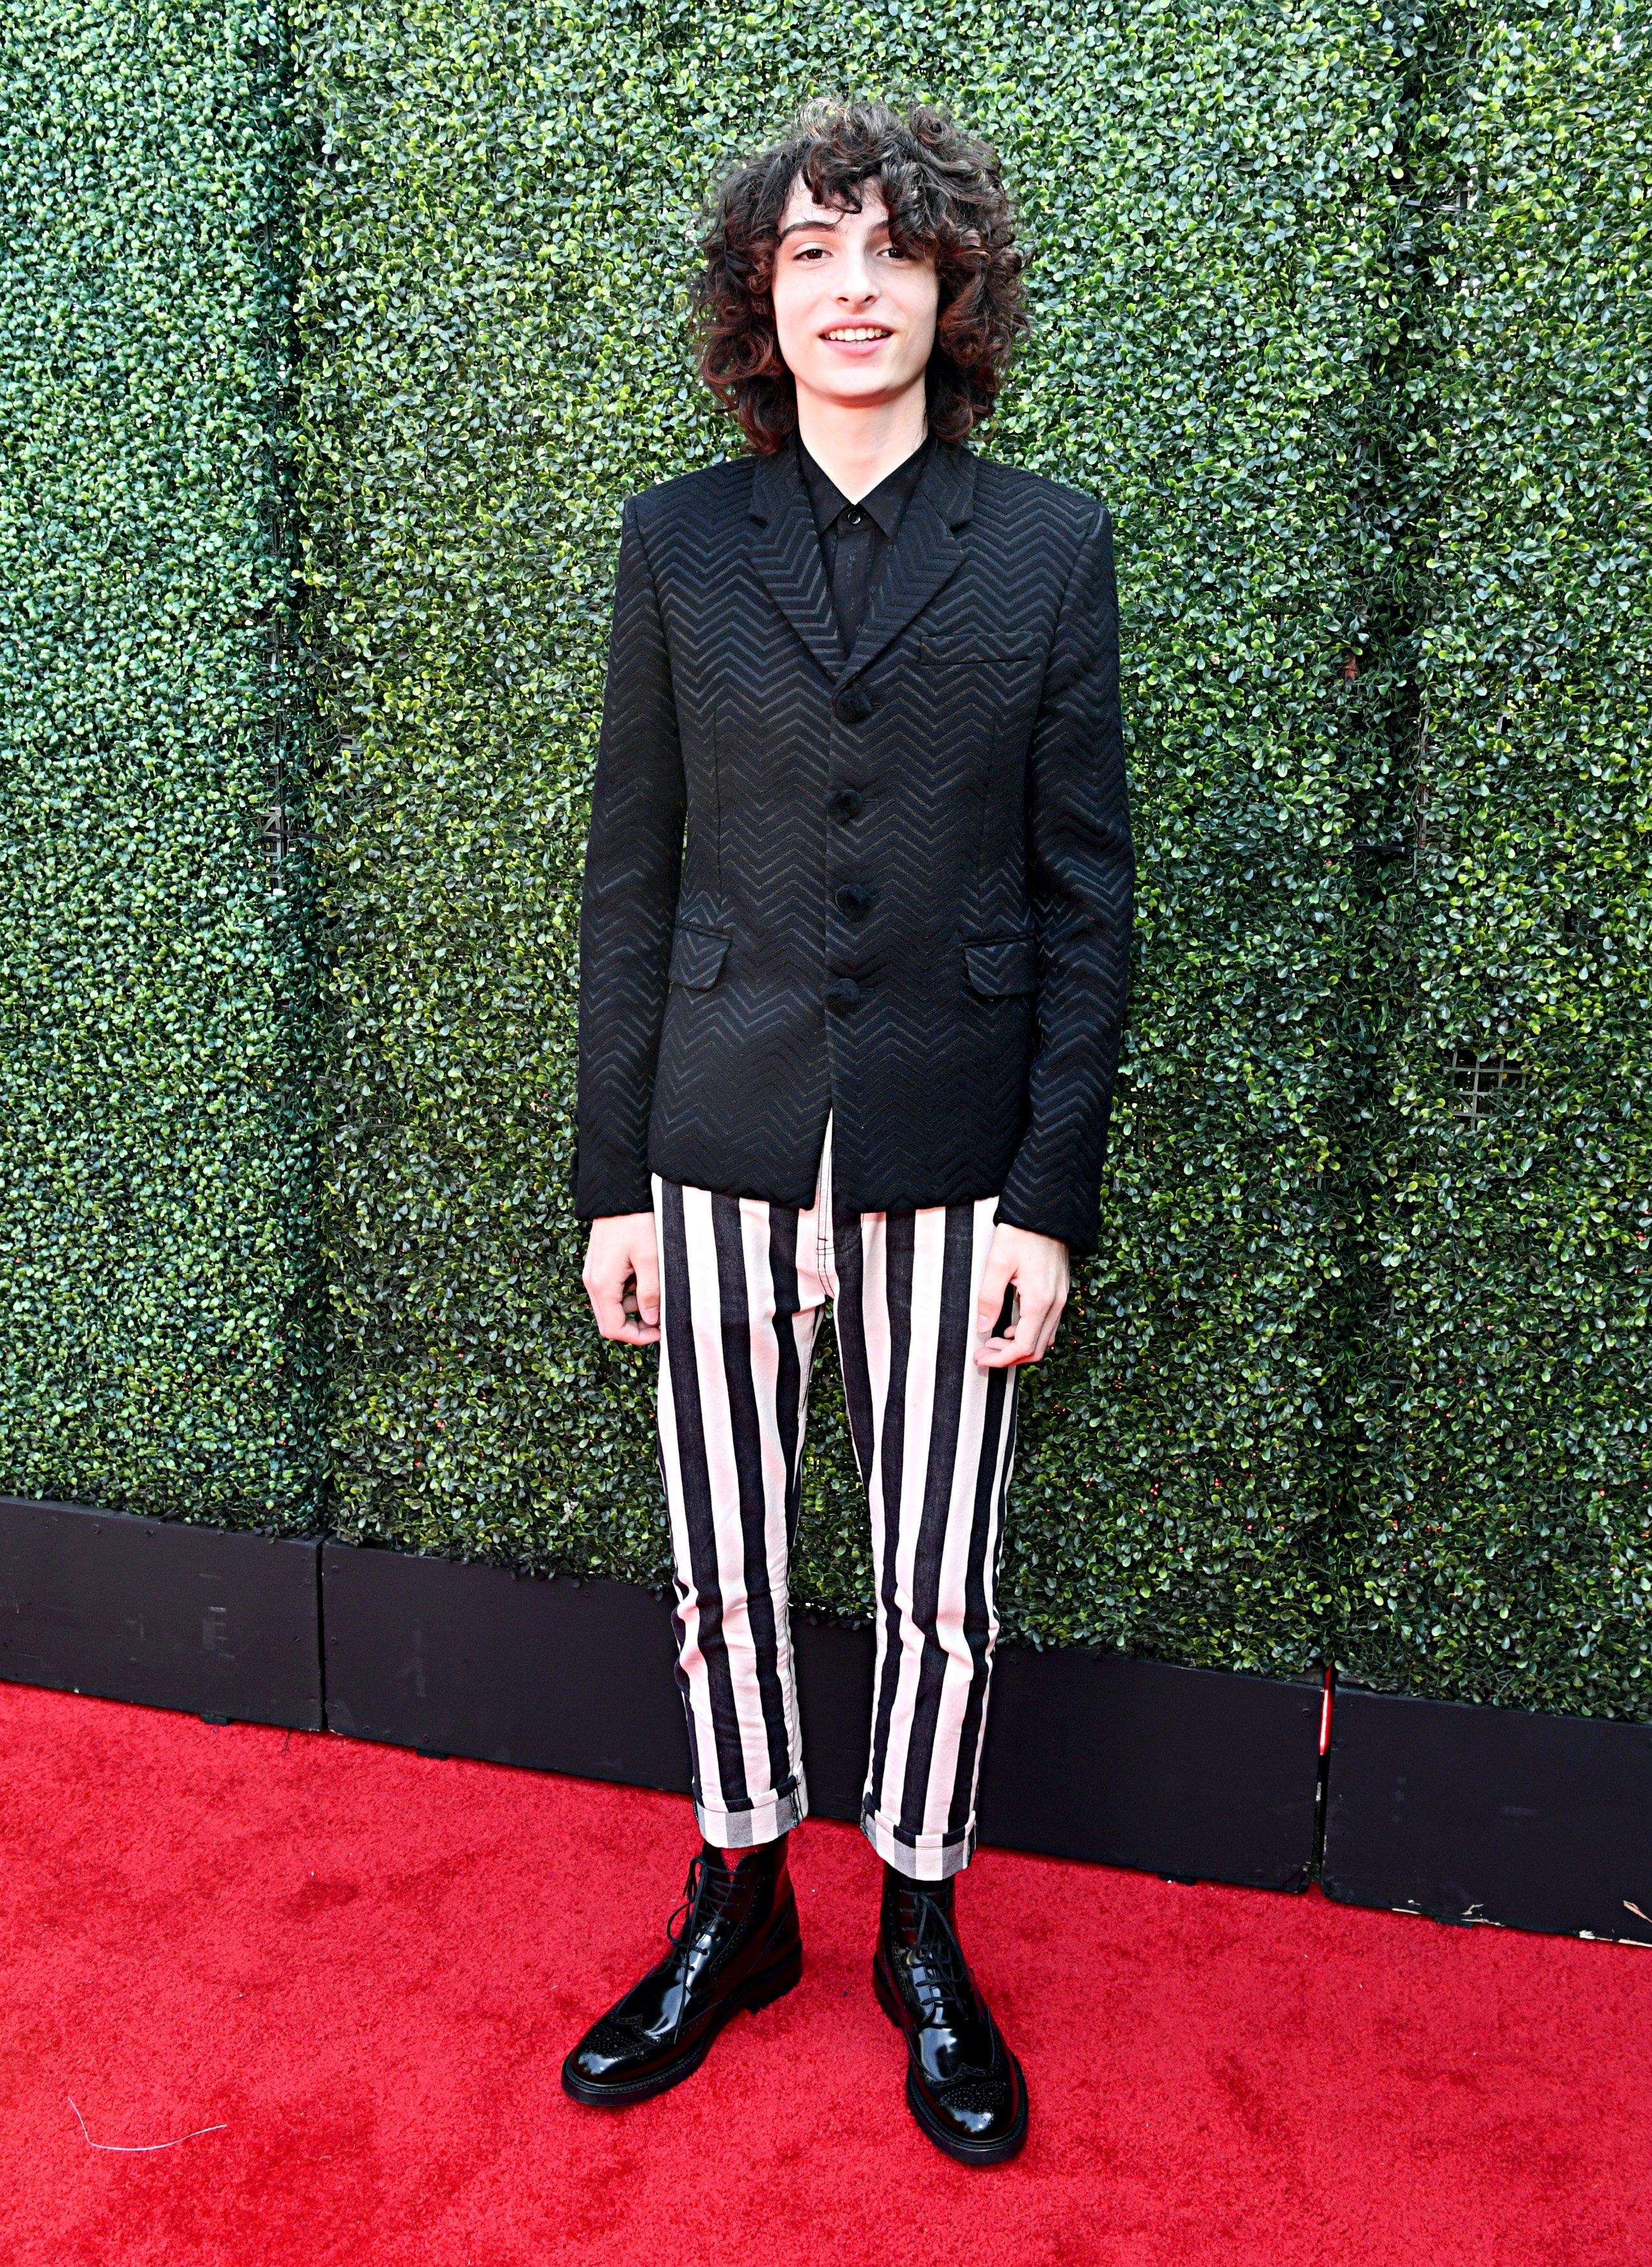 Finn Wolfhard at the red carpet of the 2019 MTV Movie and TV Awards on June 15, 2019 in Santa Monica, California. | Photo: Getty Images